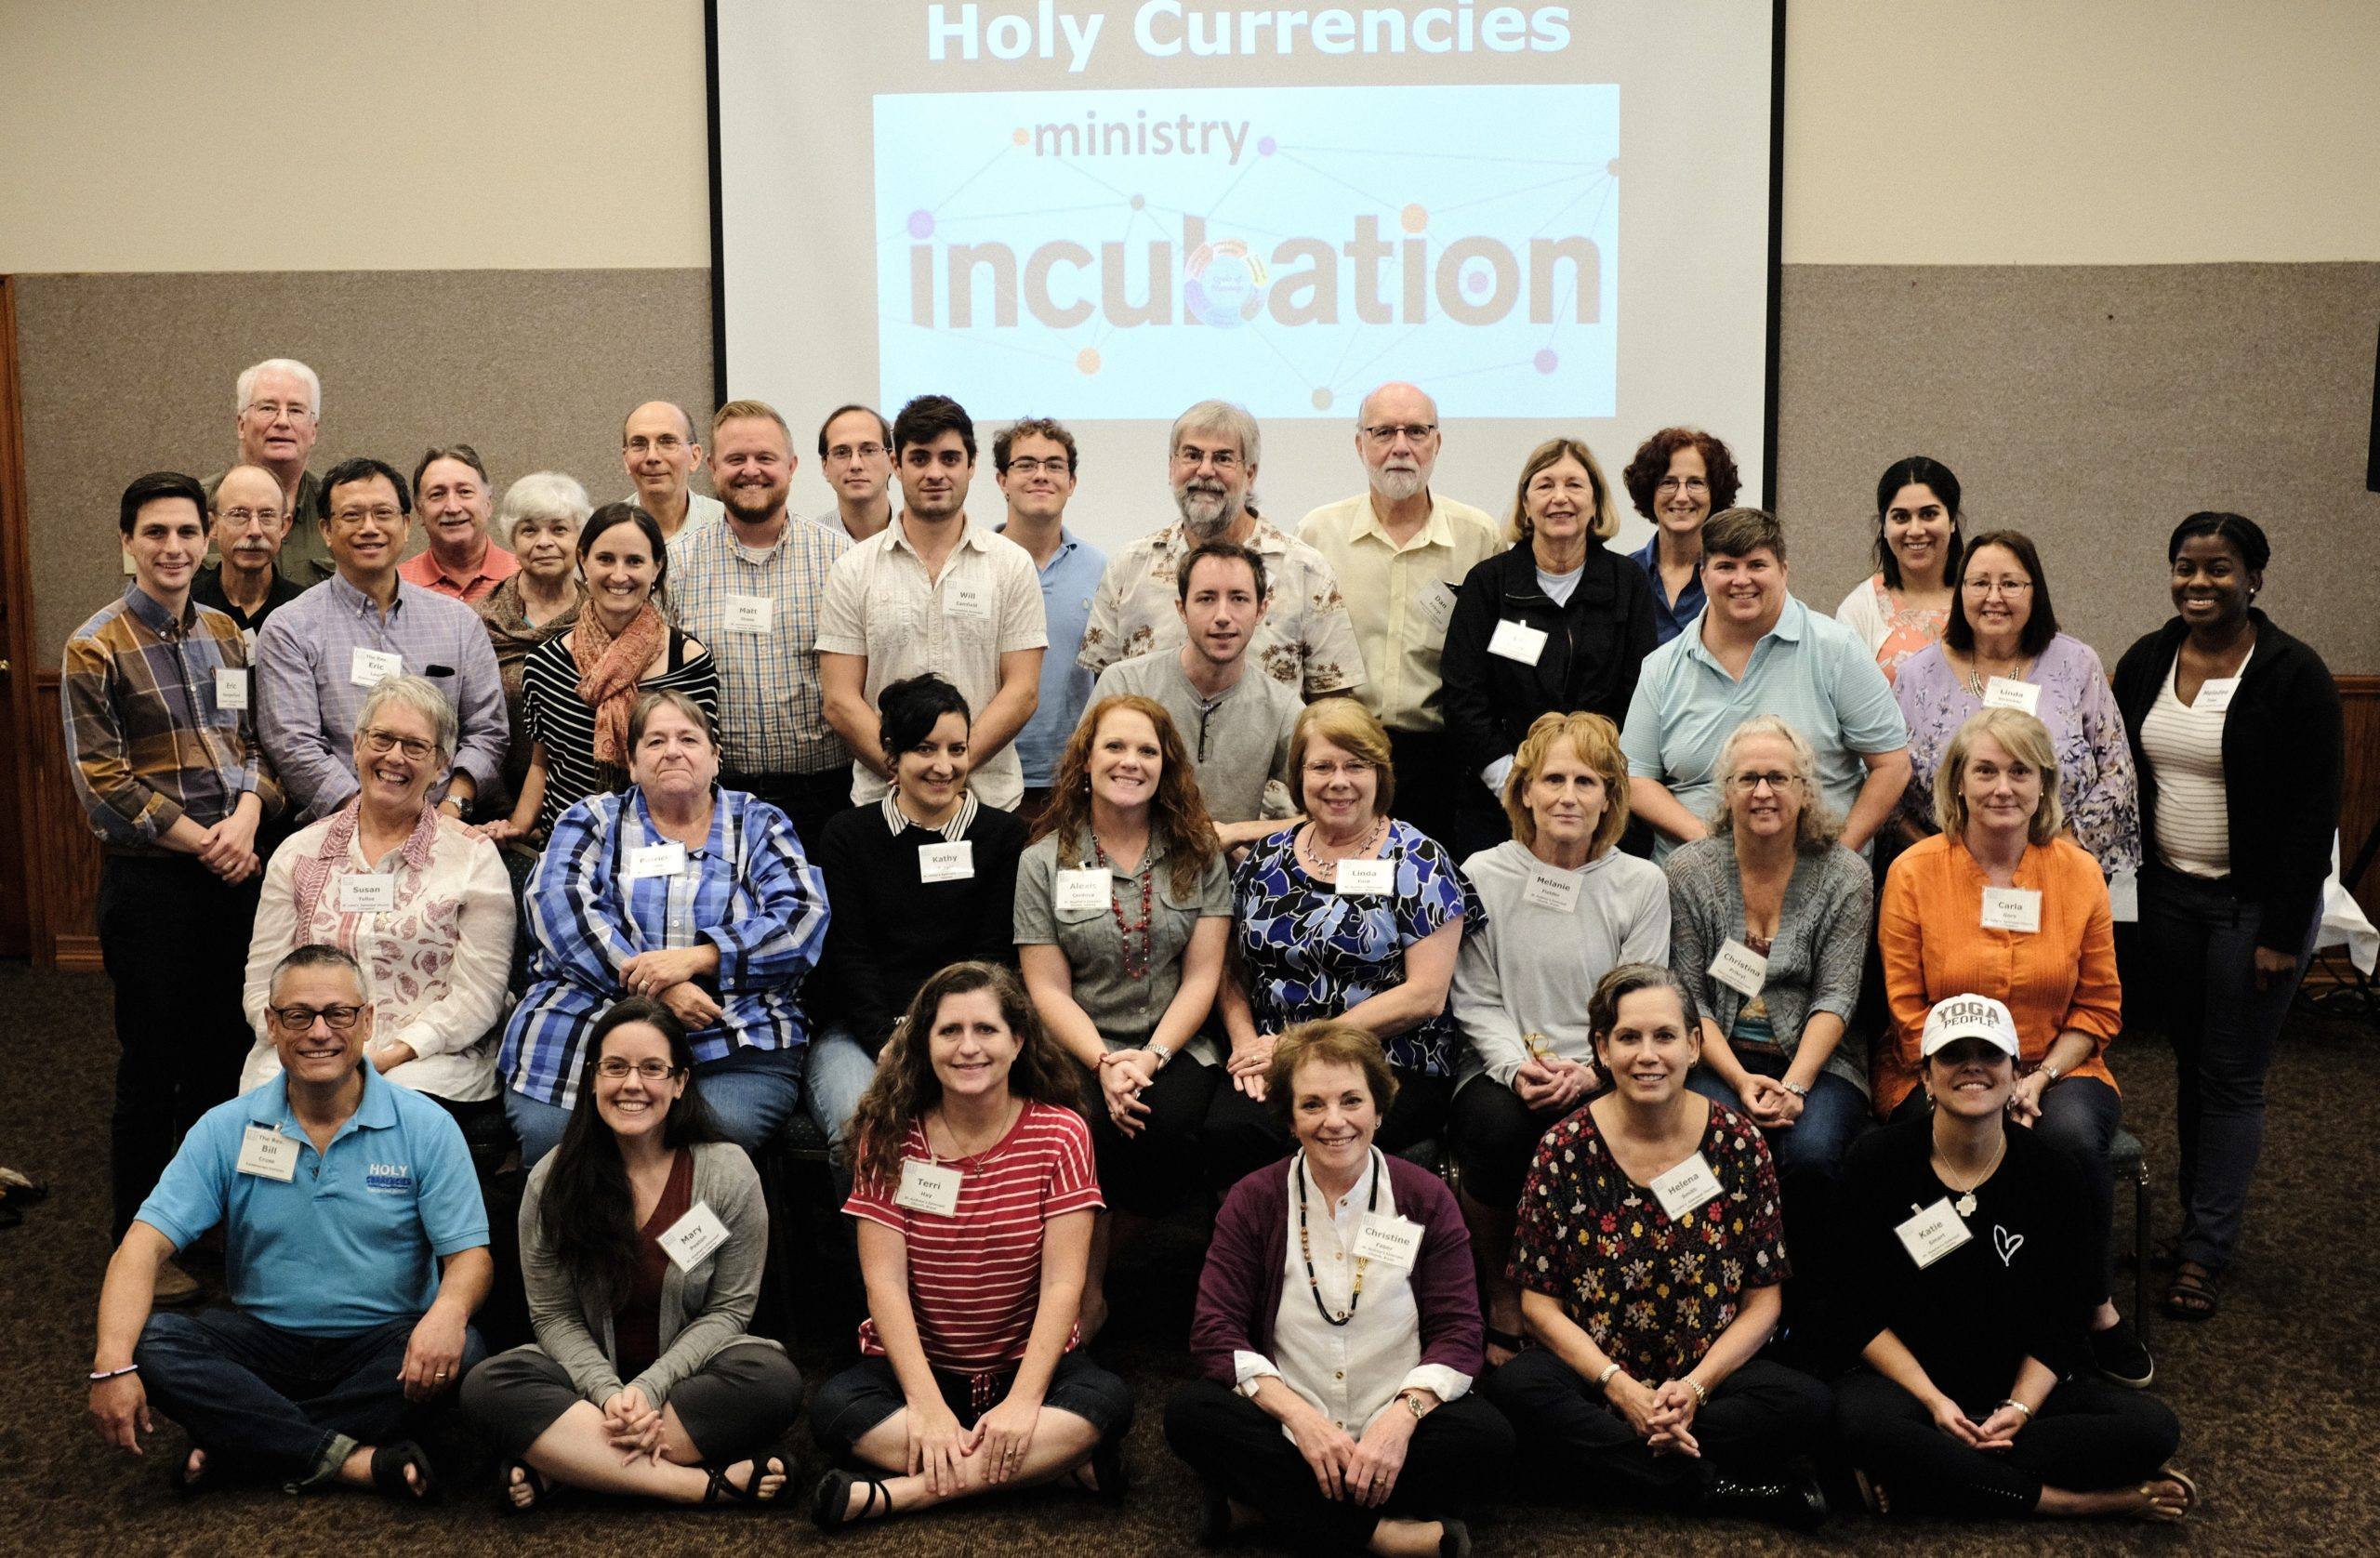 Holy Currencies group.jpg